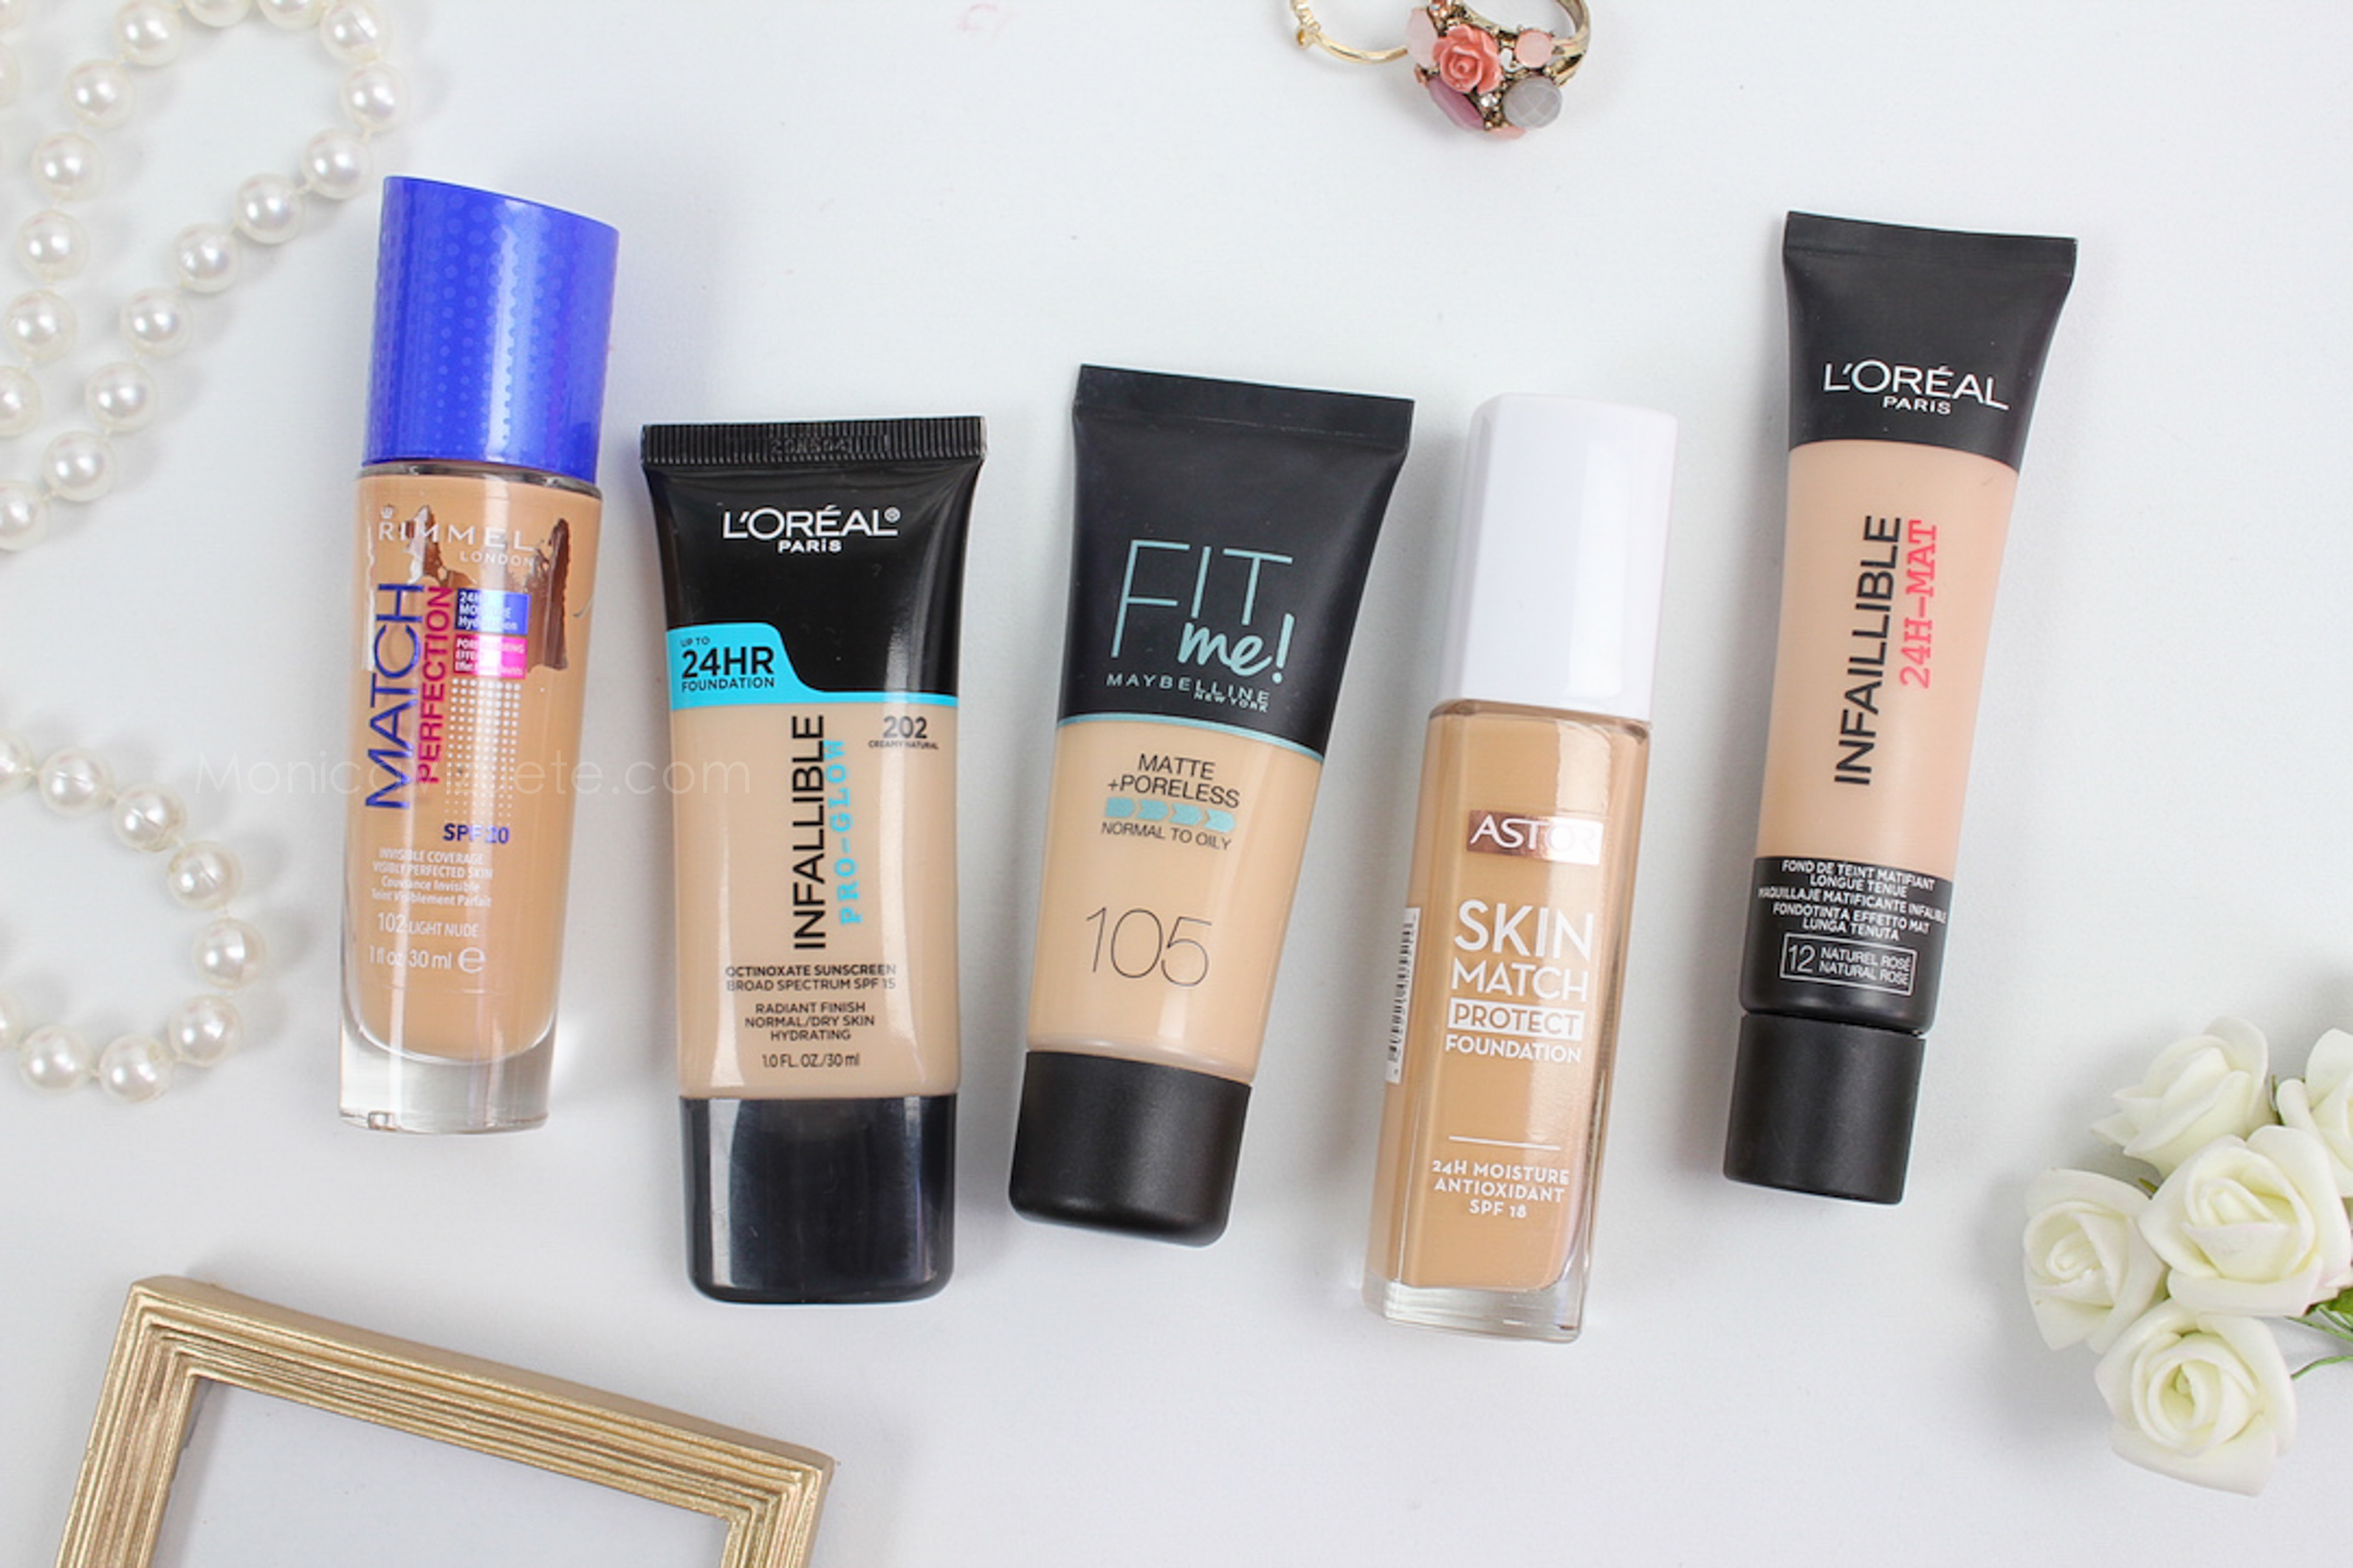 mejores bases de maquillaje low cost